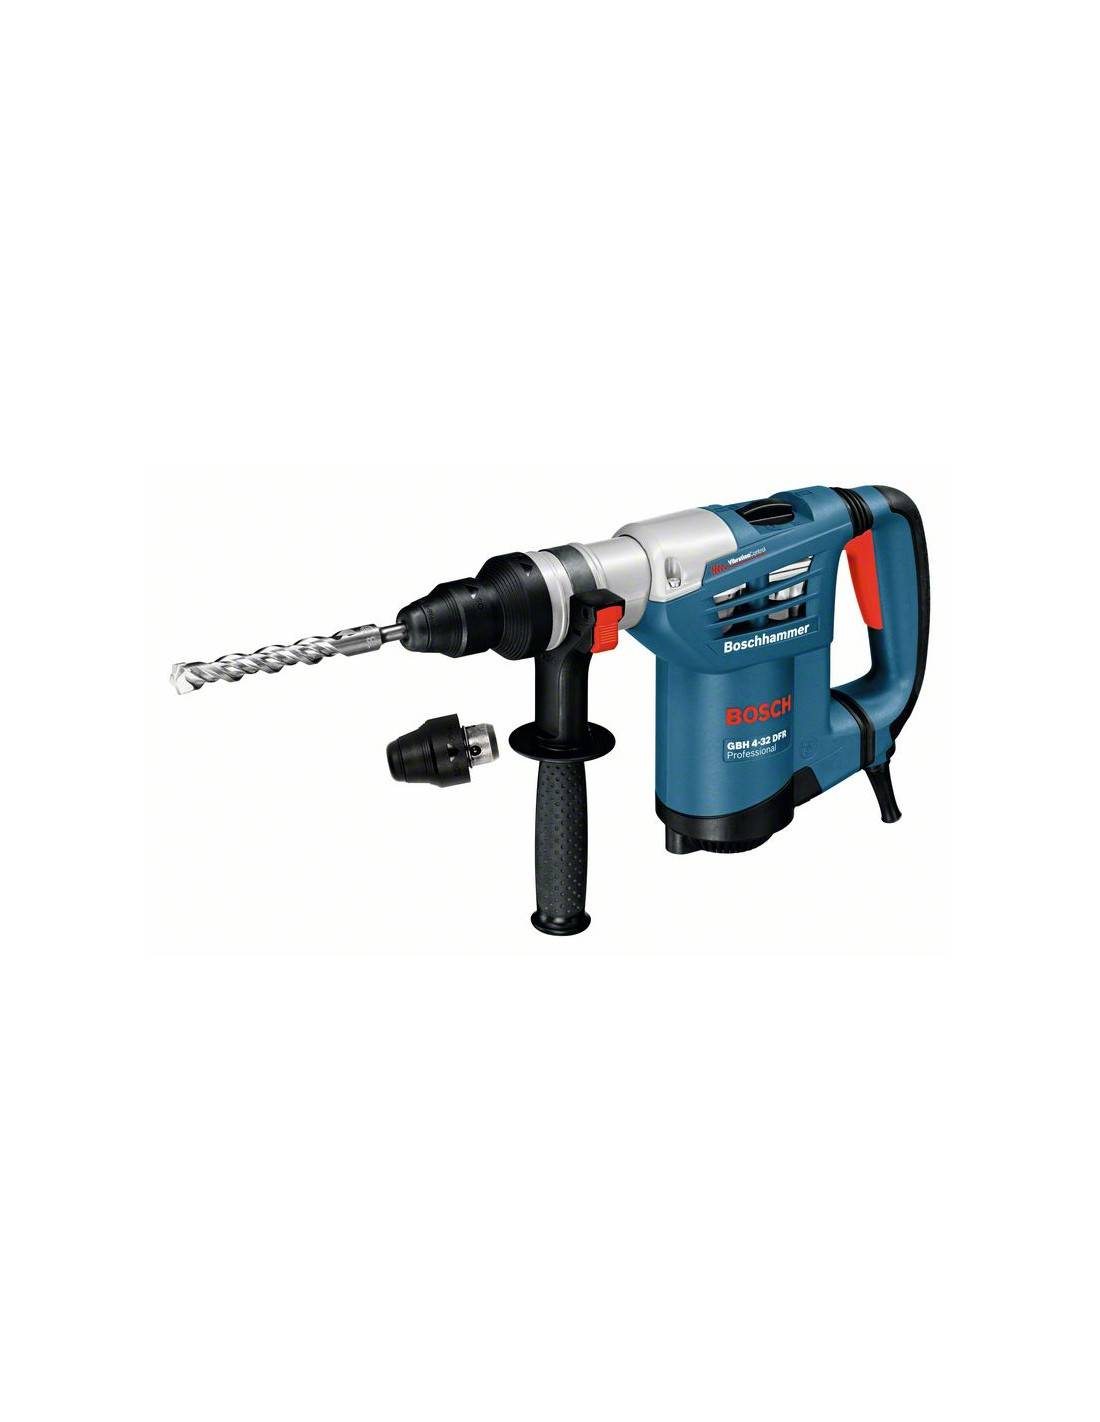 Perforateur SDS plus 900W GBH 4-32 DFR en coffret L-BOXX - BOSCH - 0611332104